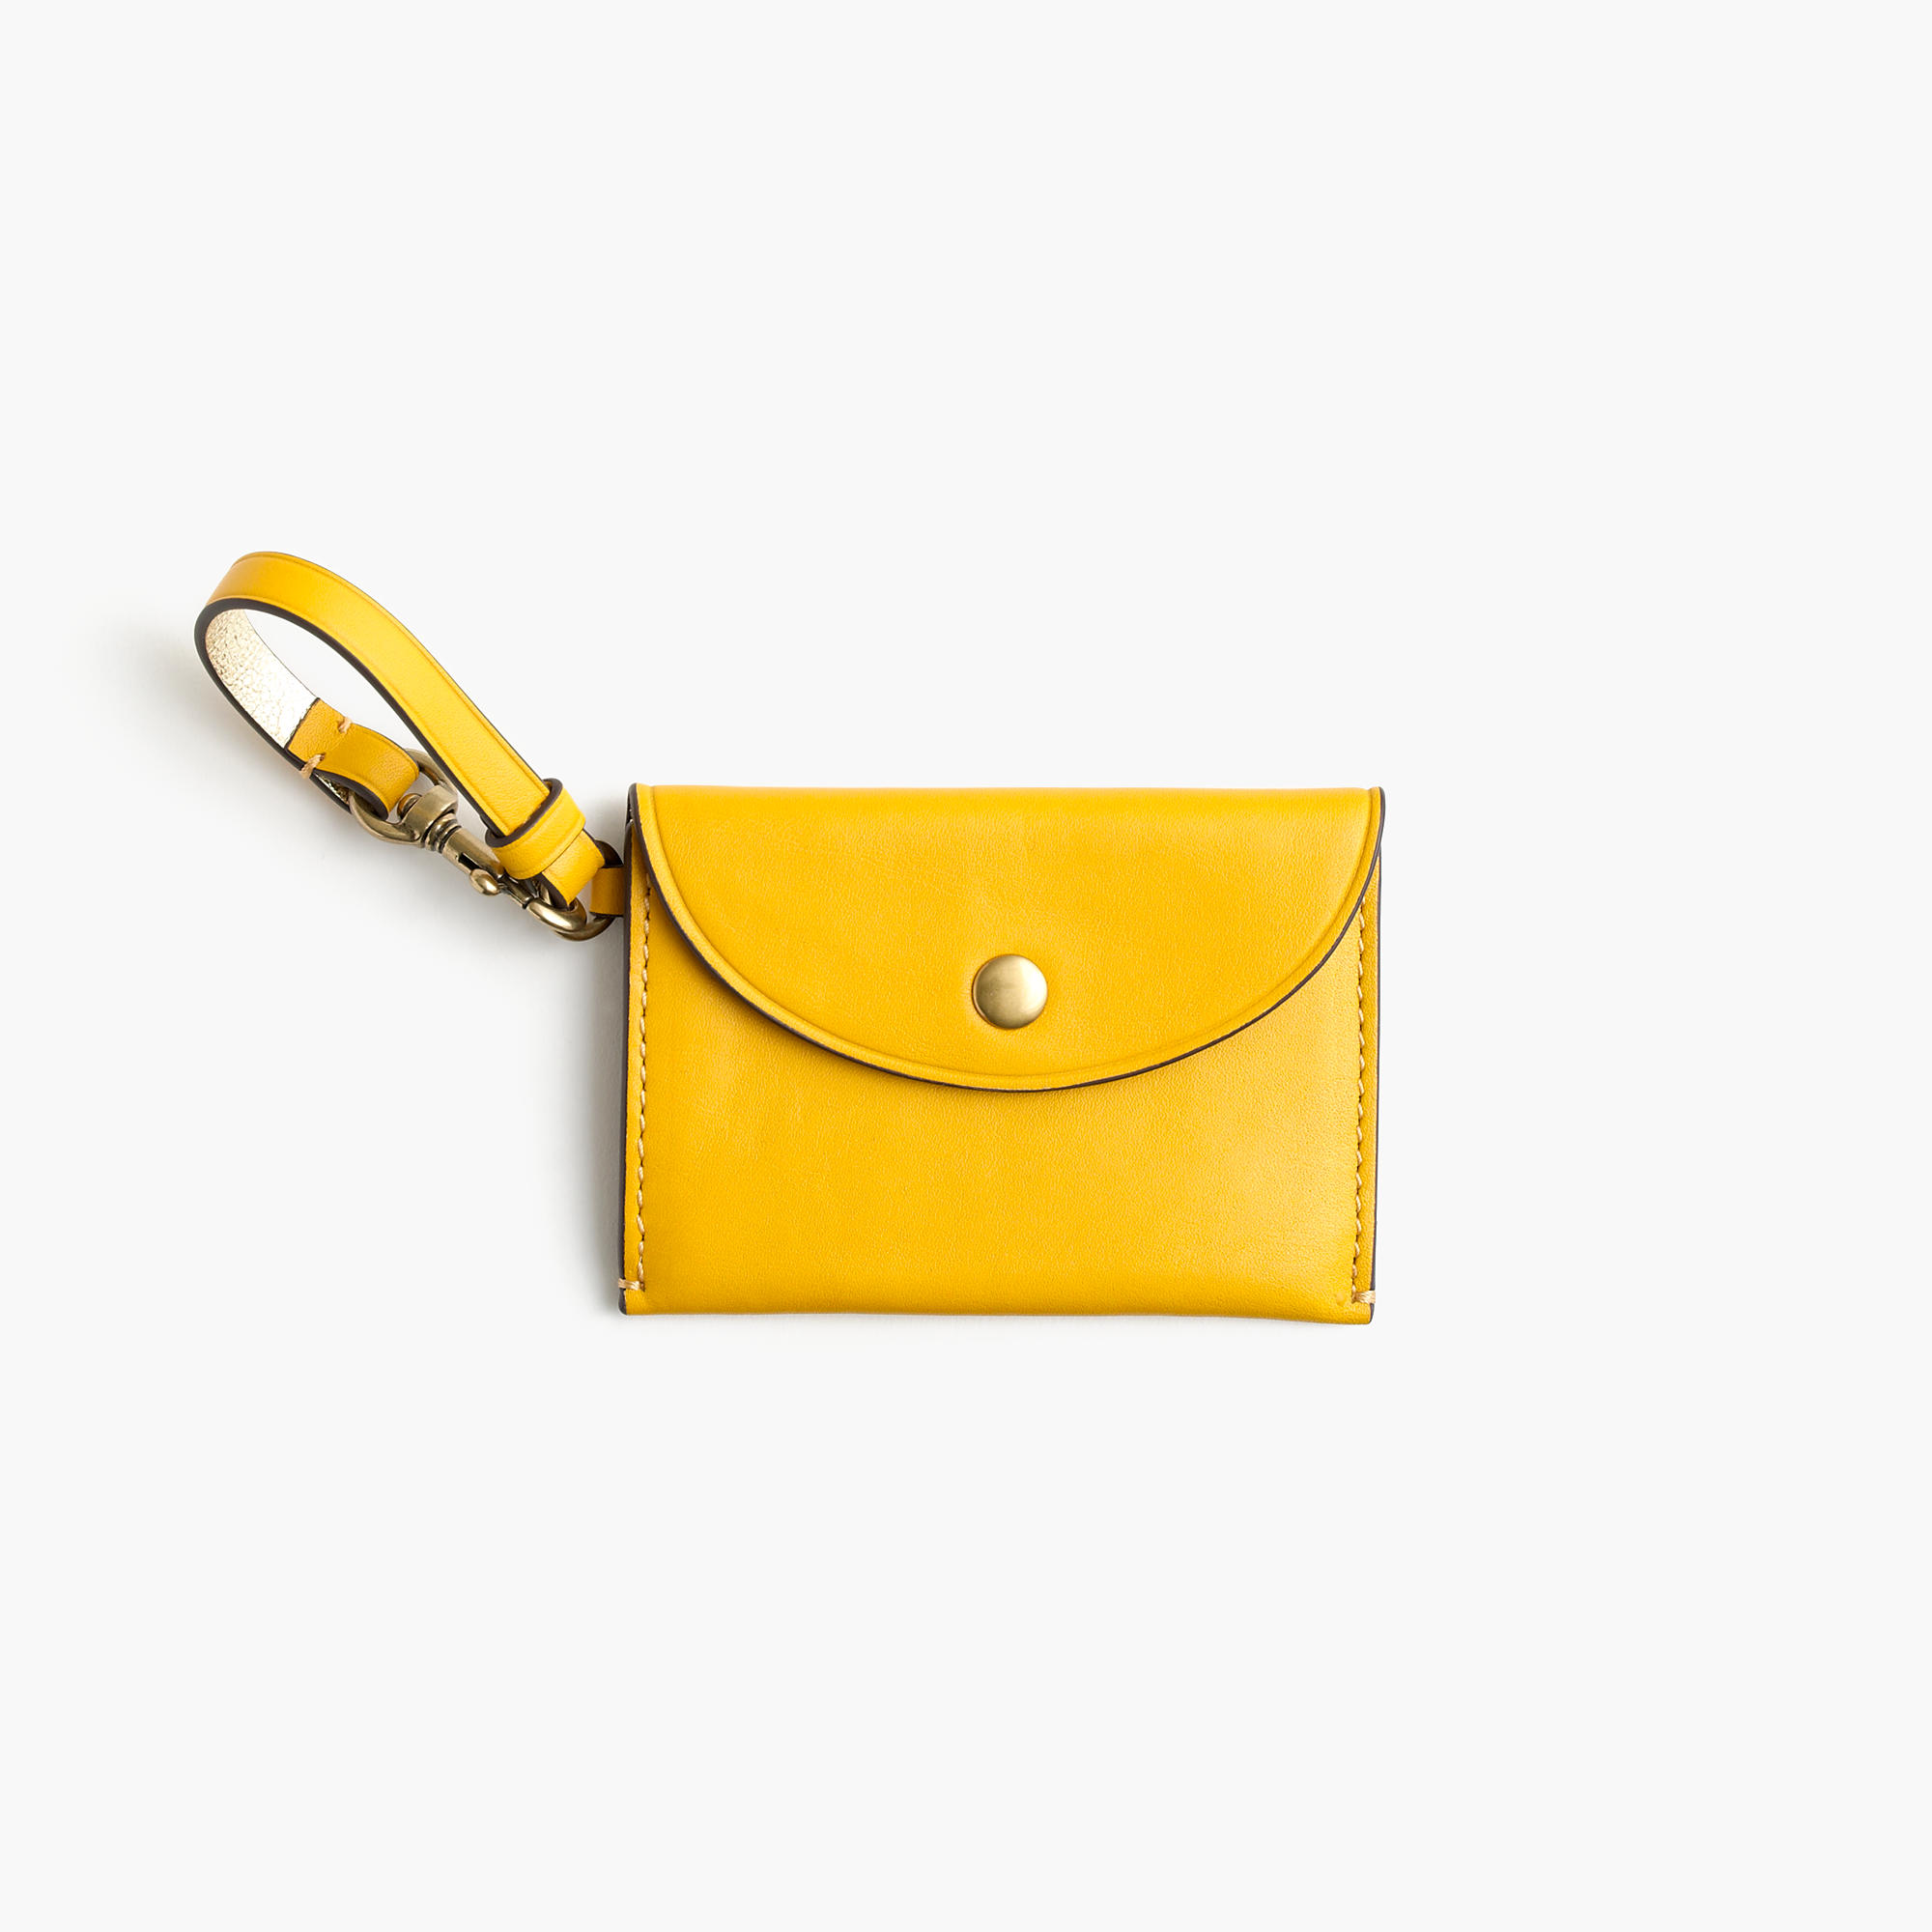 J.Crew Customizable Coin Pouch in Italian Leather, Warm Sunflower